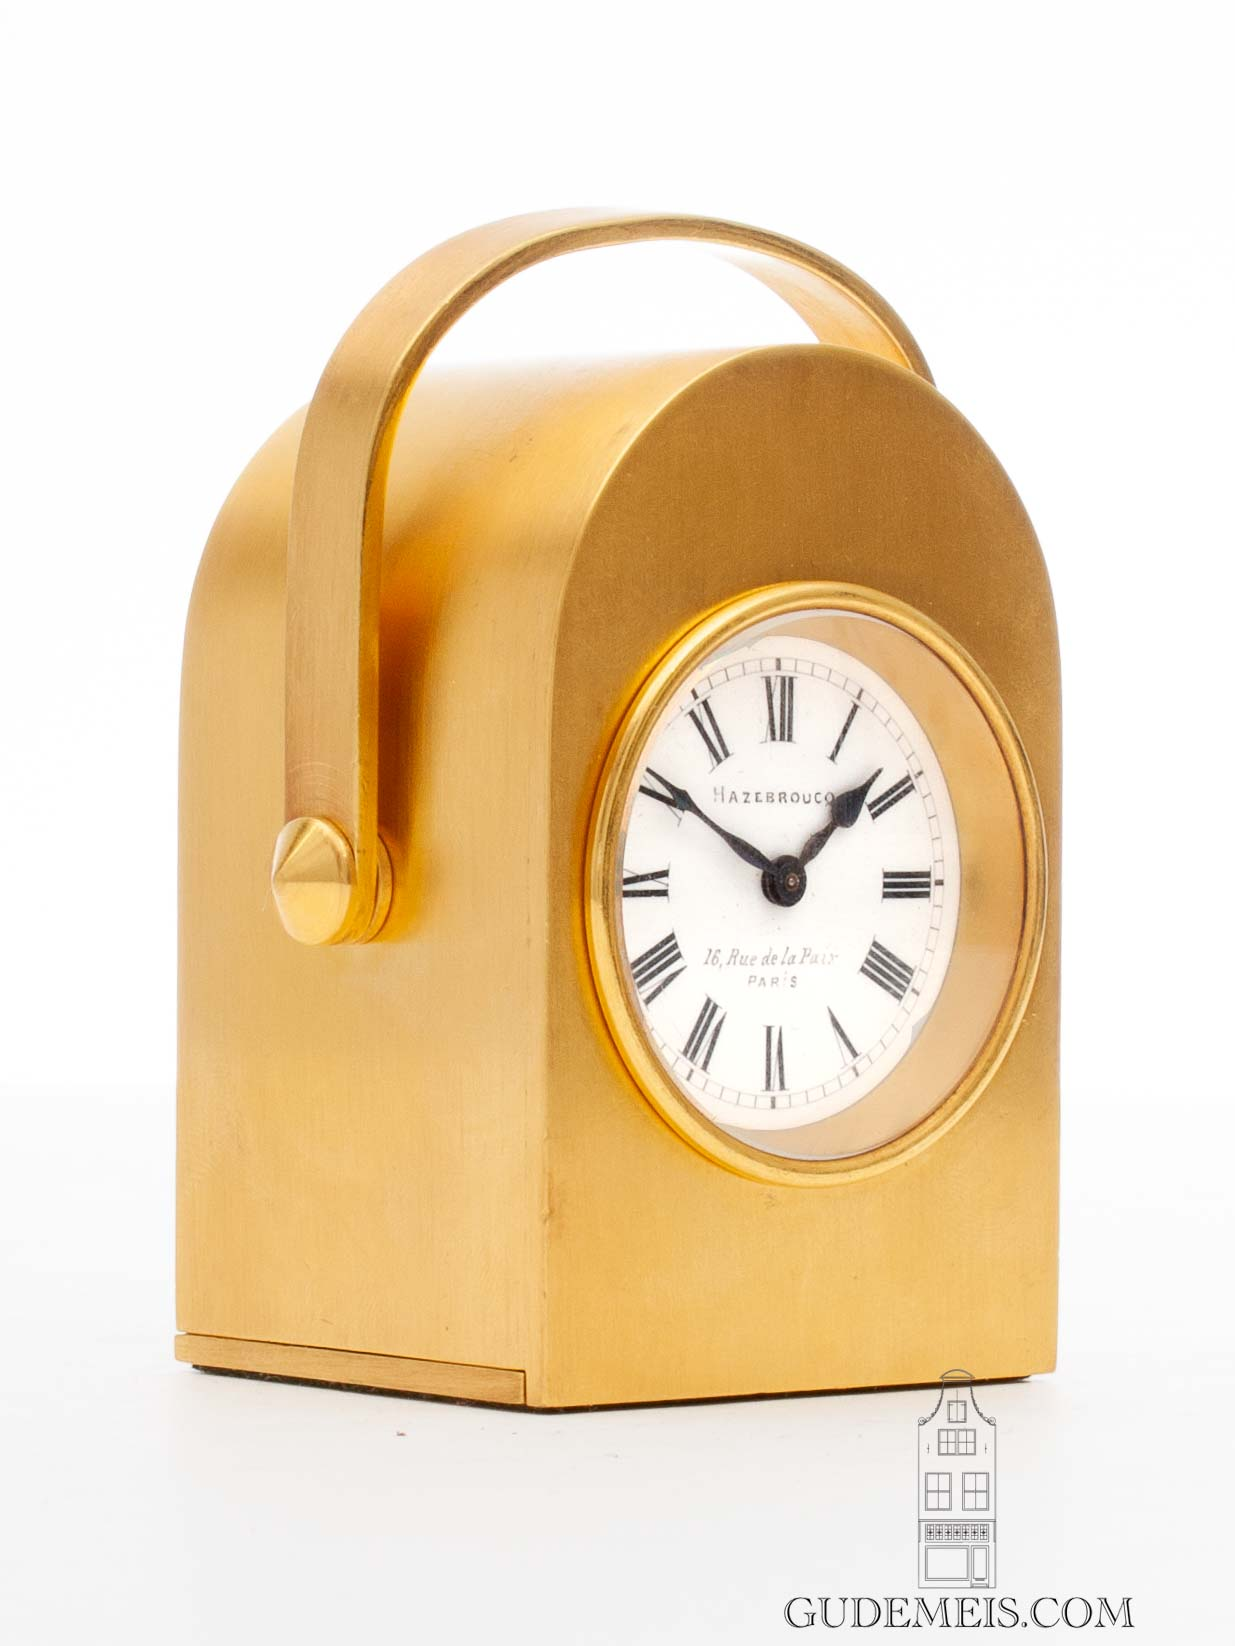 miniature-French-arched-gilt-brass-antique-carriage-travel-clock-margaine